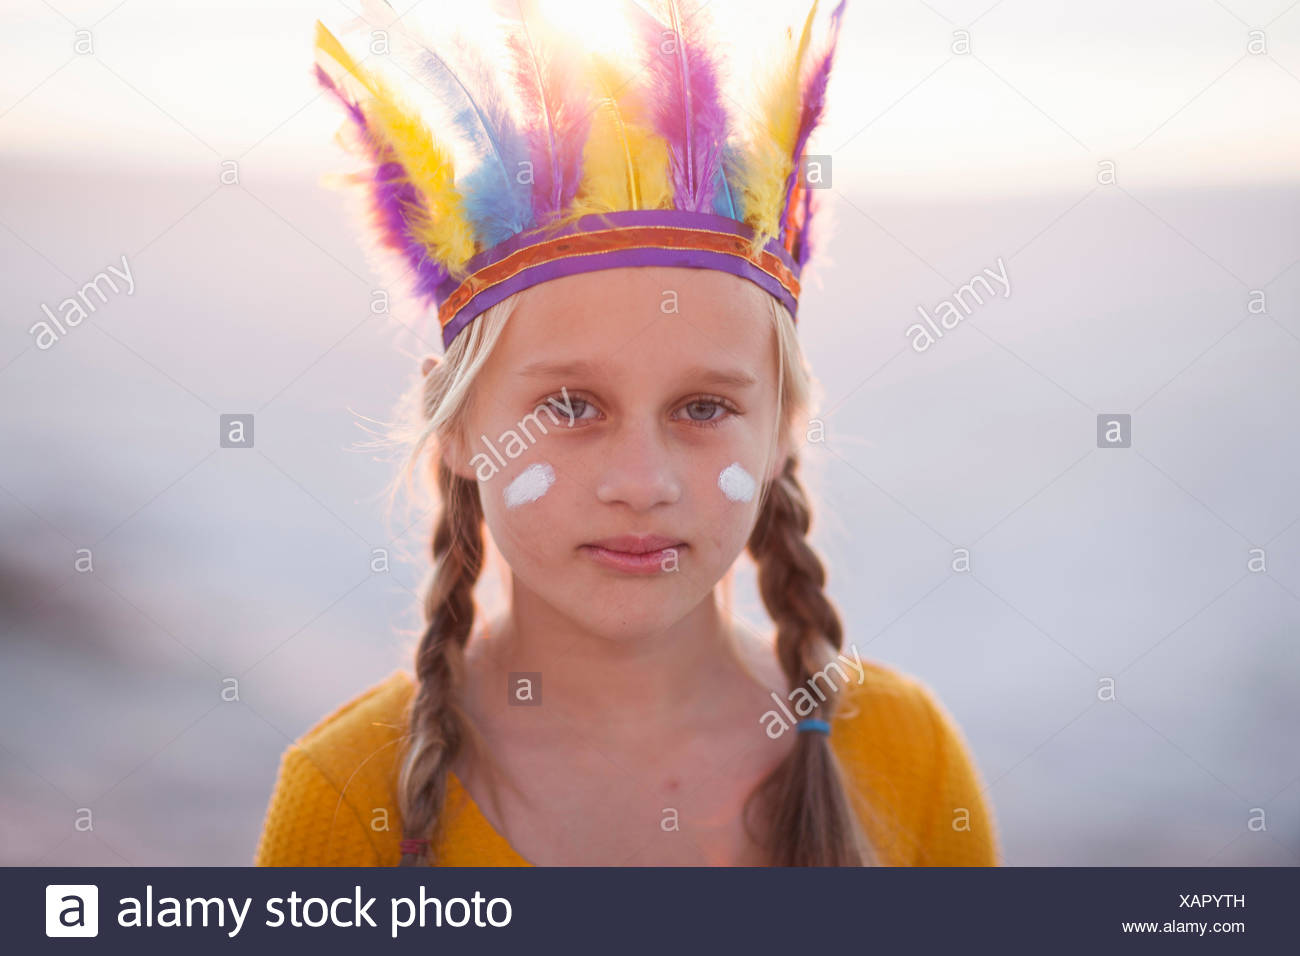 Portrait of boy native american avec coiffe de plumes Photo Stock